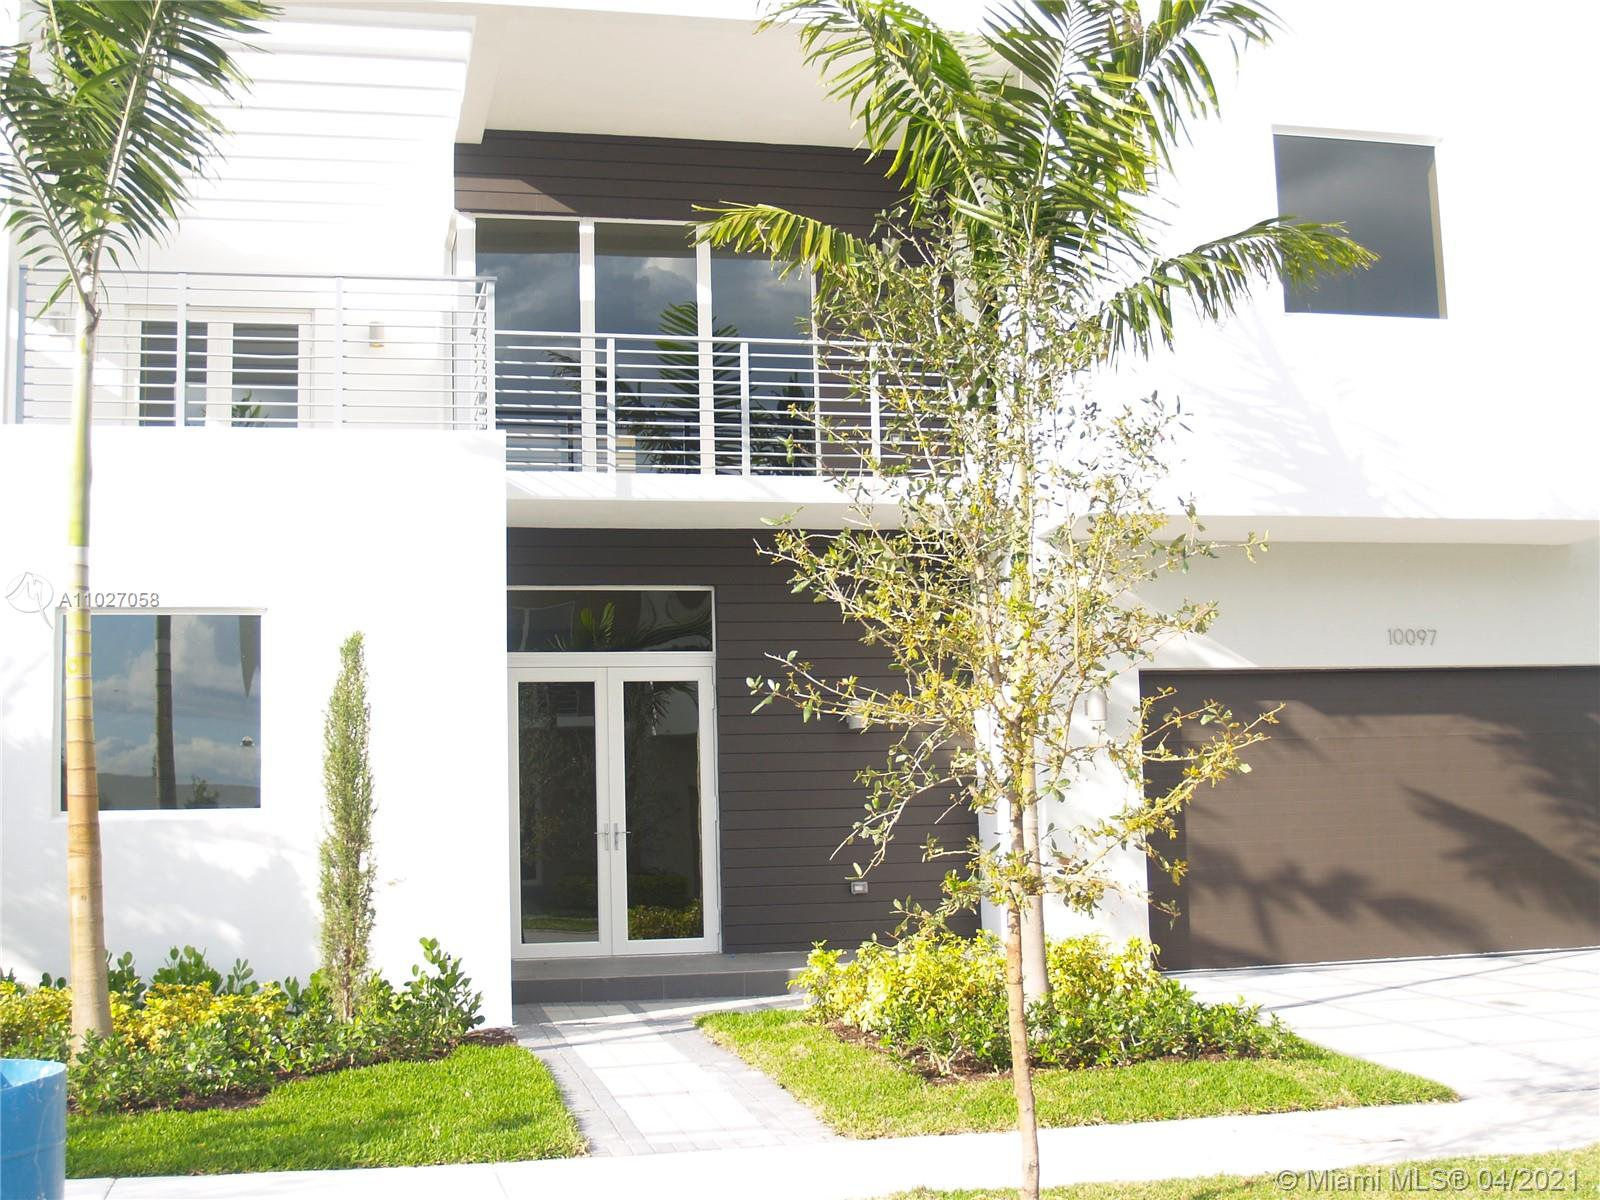 Doral Commons Residential - 10097 NW 77th St, Doral, FL 33178